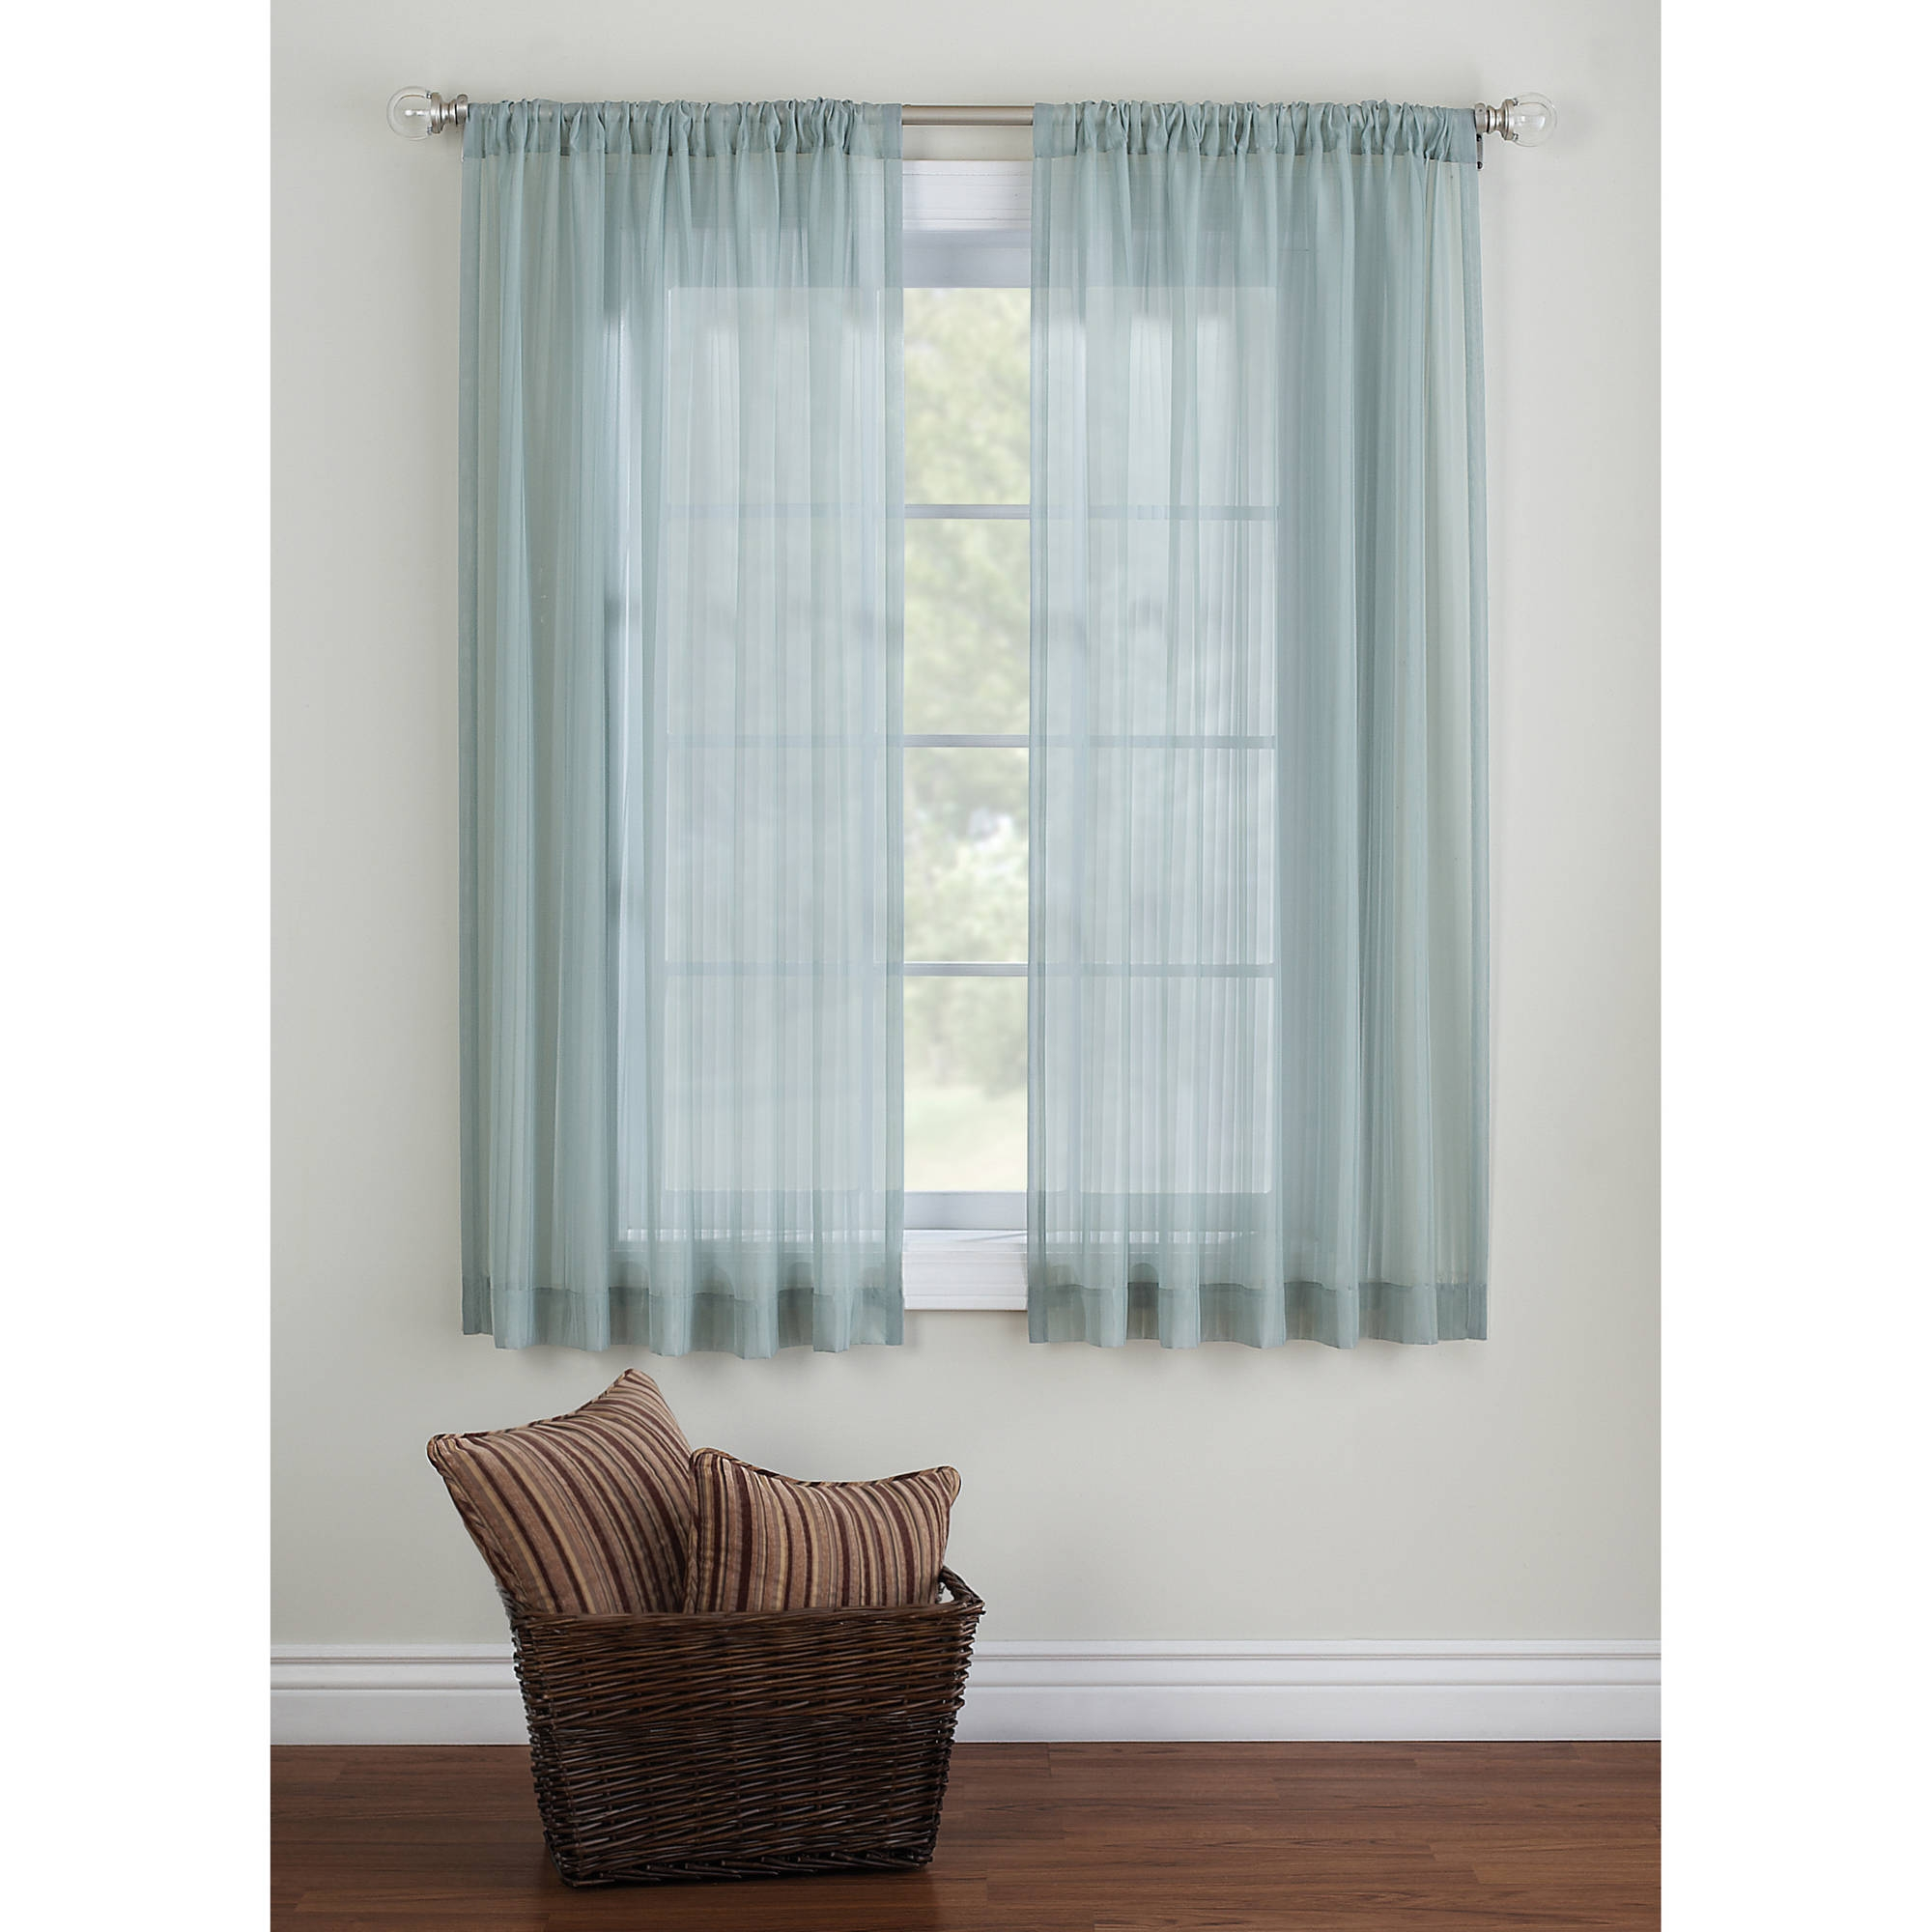 Sheer Curtains Within 54 Inch Long Curtain Panels (View 3 of 25)